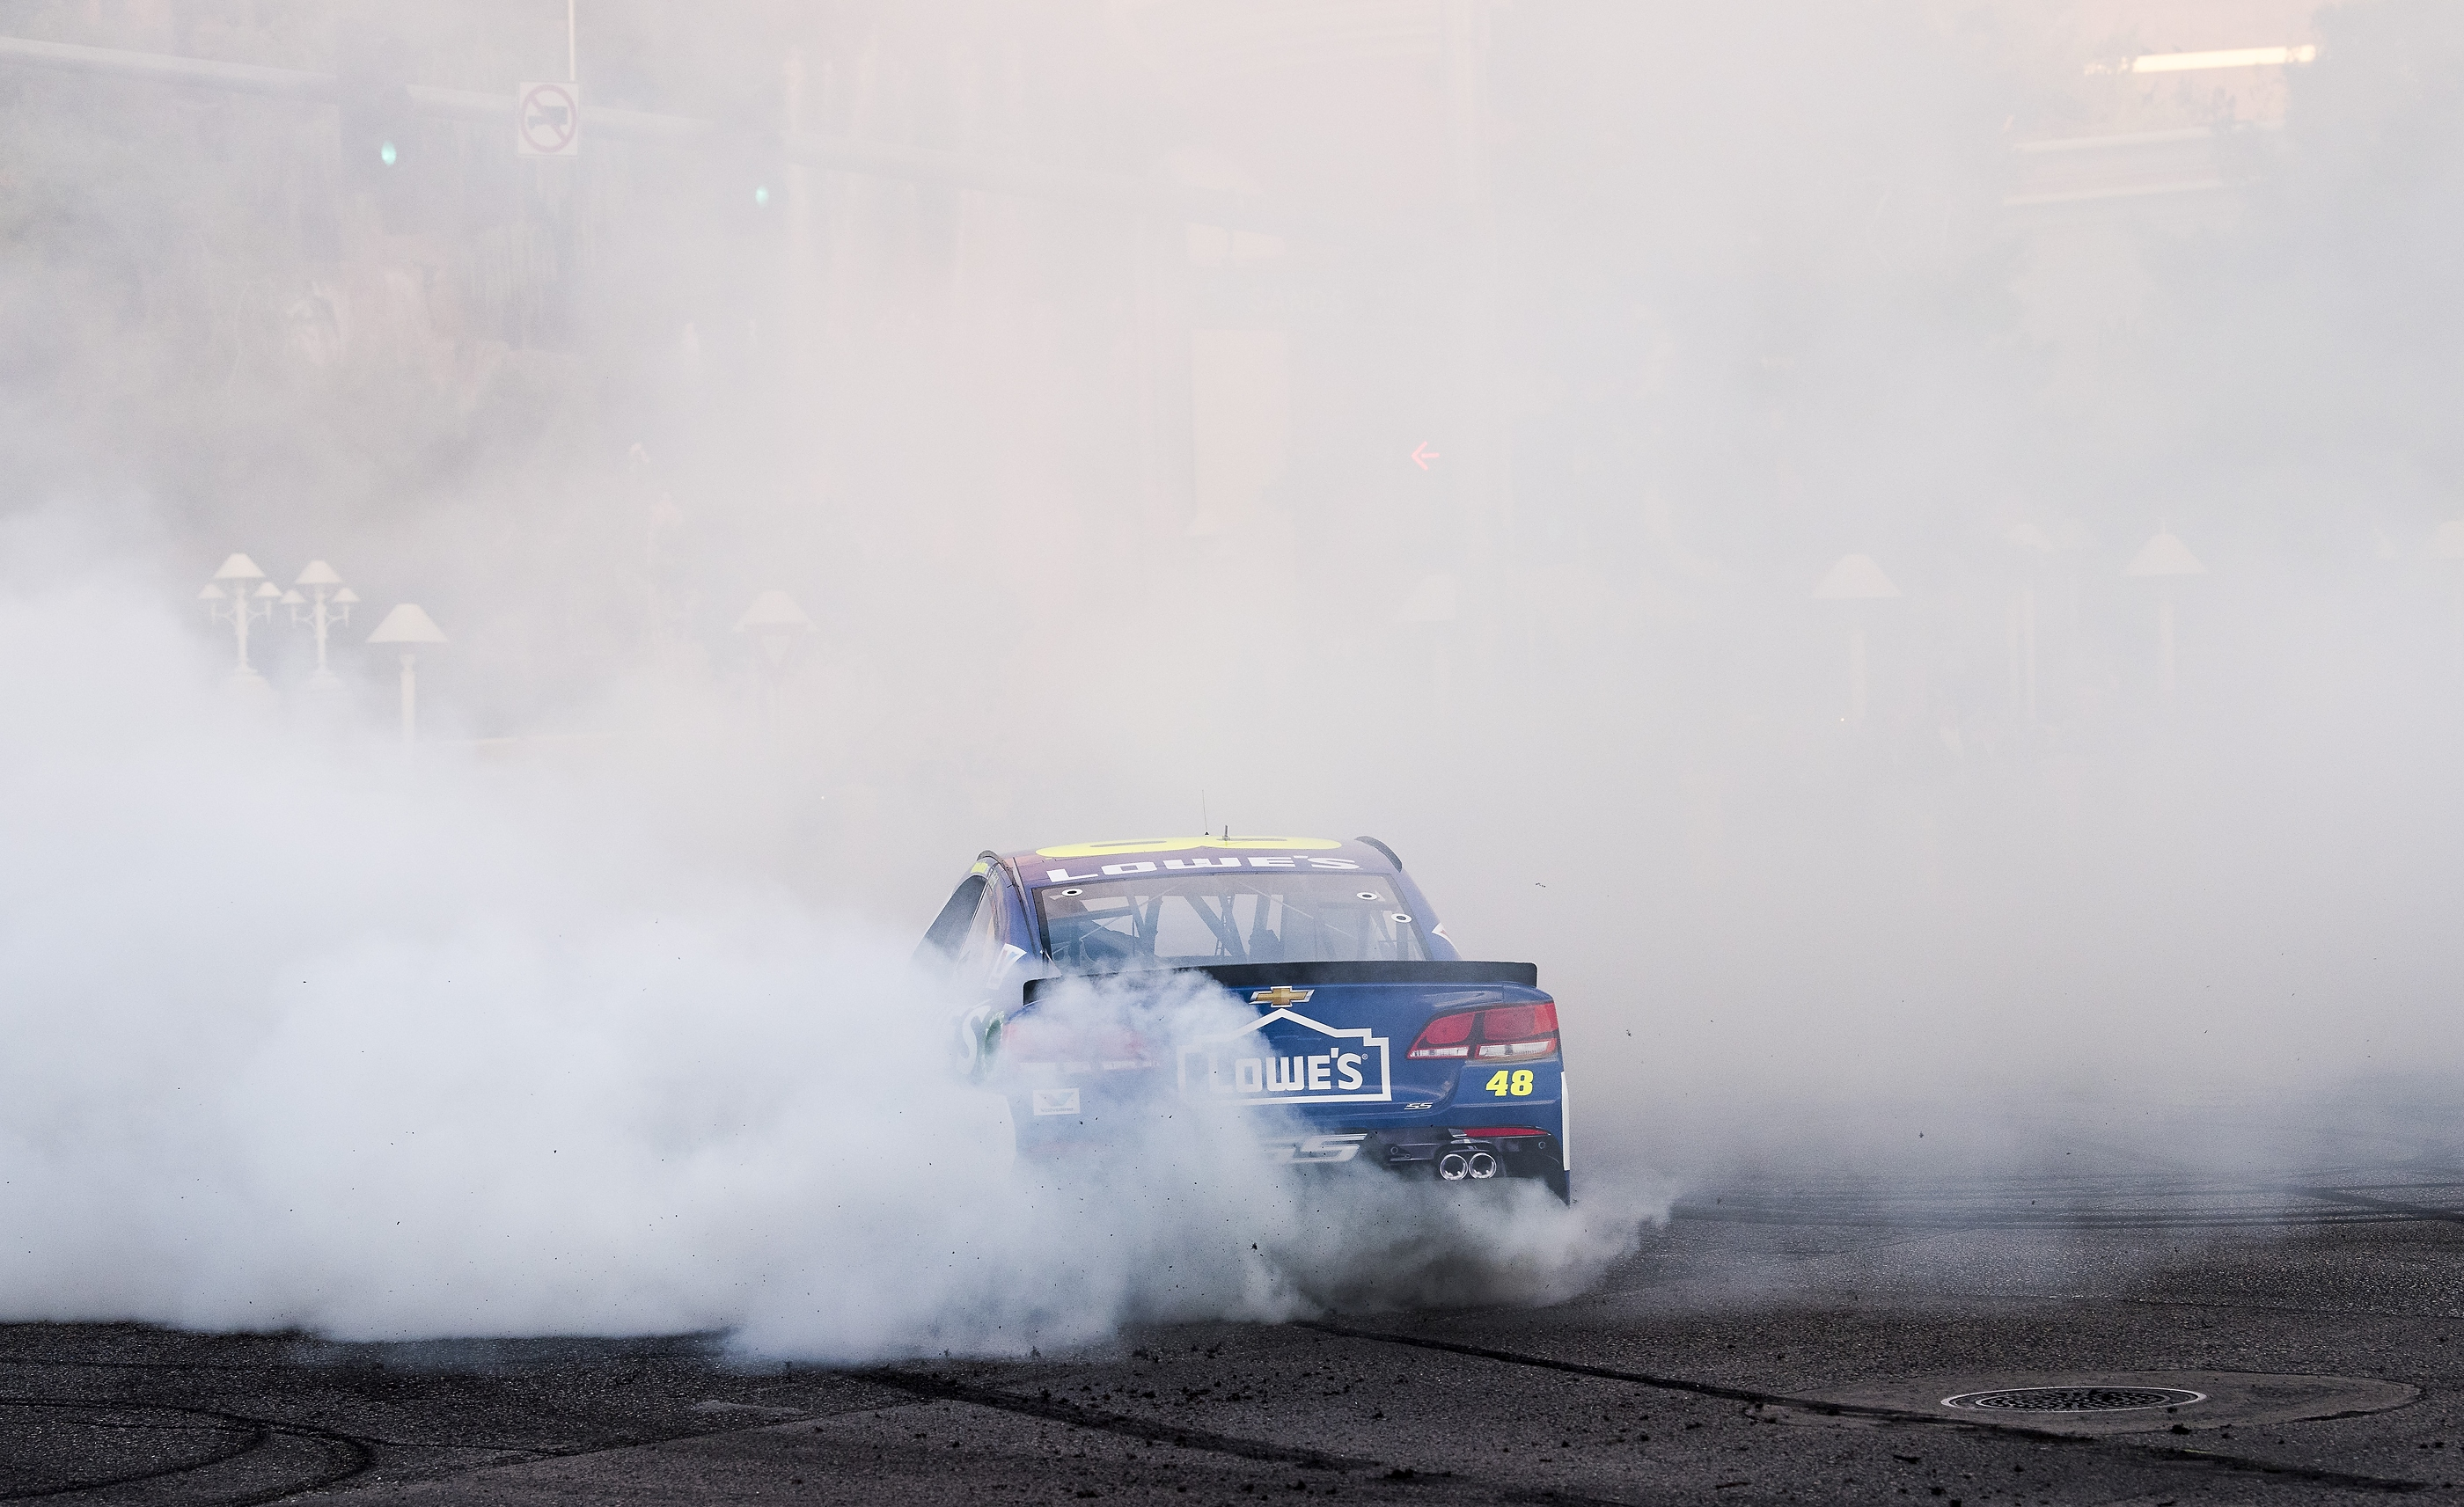 Jimmie Johnson and his #48 Hendrick Motorsports Lowe's Chevrolet SS is shrouded in smoke while burning out at the NASCAR Victory Lap on the Las Vegas Strip at the intersection of Las Vegas Blvd. and Spring  Mountain Road on Wednesday, Nov. 29, 2017. CREDIT: Mark Damon/Las Vegas News Bureau